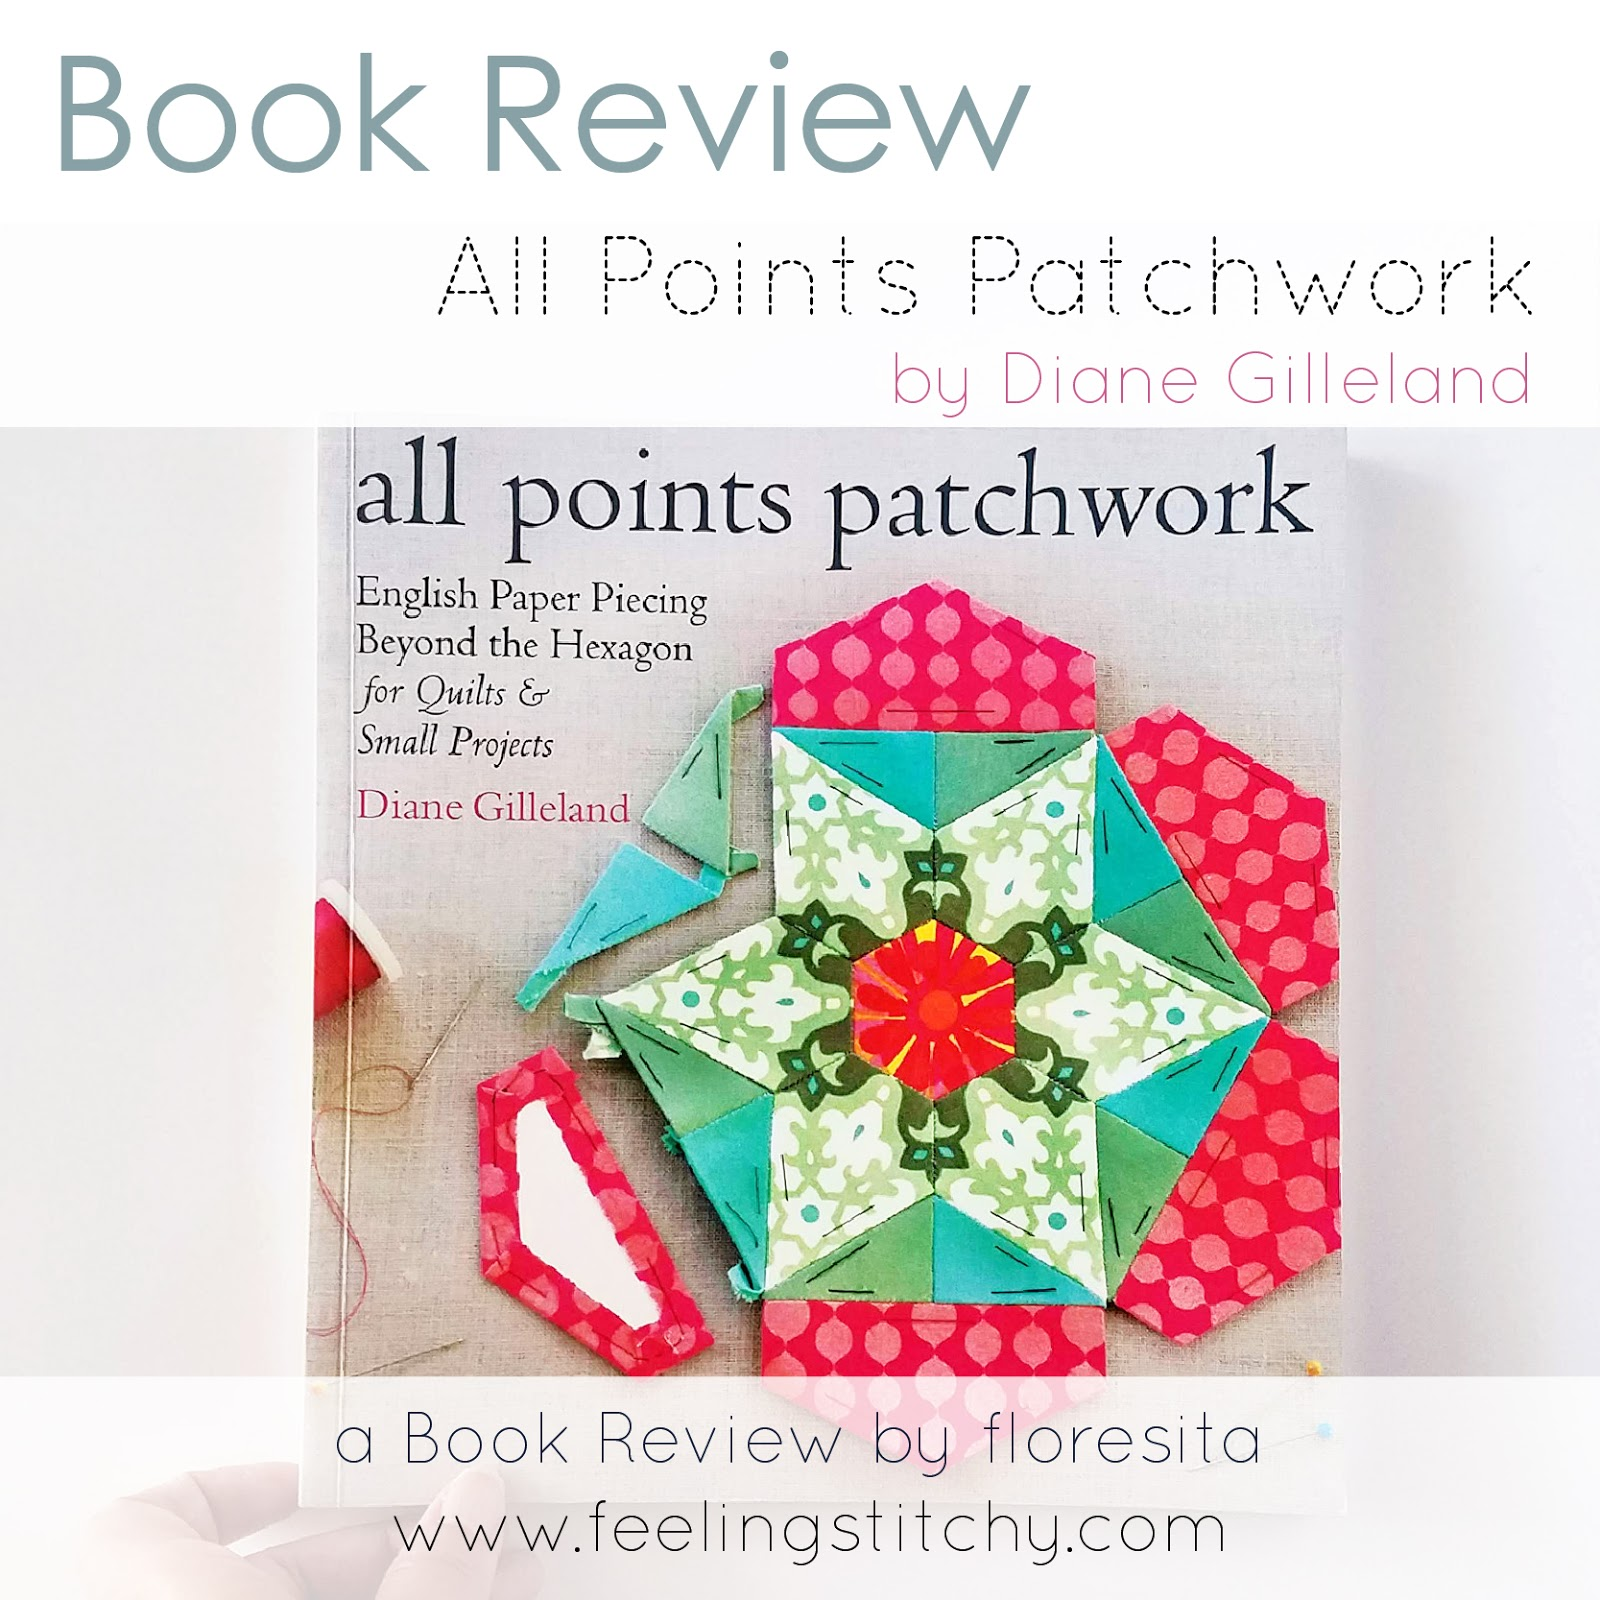 Book review of All Points Patchwork by Diane Gilleland as featured by floresita on Feeling Stitchy